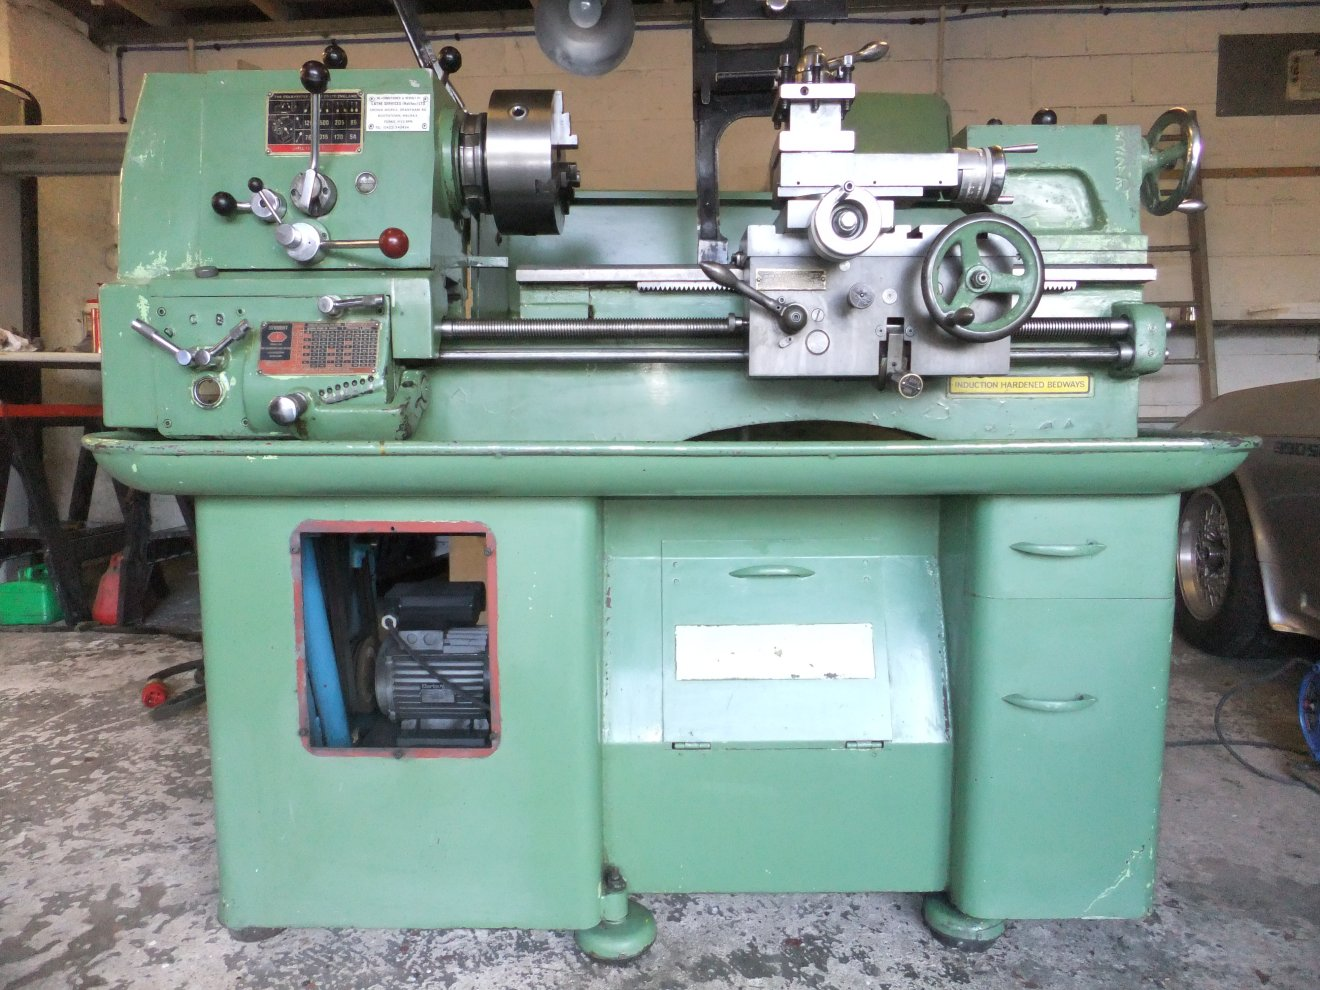 Colchester Student Lathe Wiring Diagram Wire Center Motor Lathes Rh Wedgeneering Co Uk Single Phase Schematic